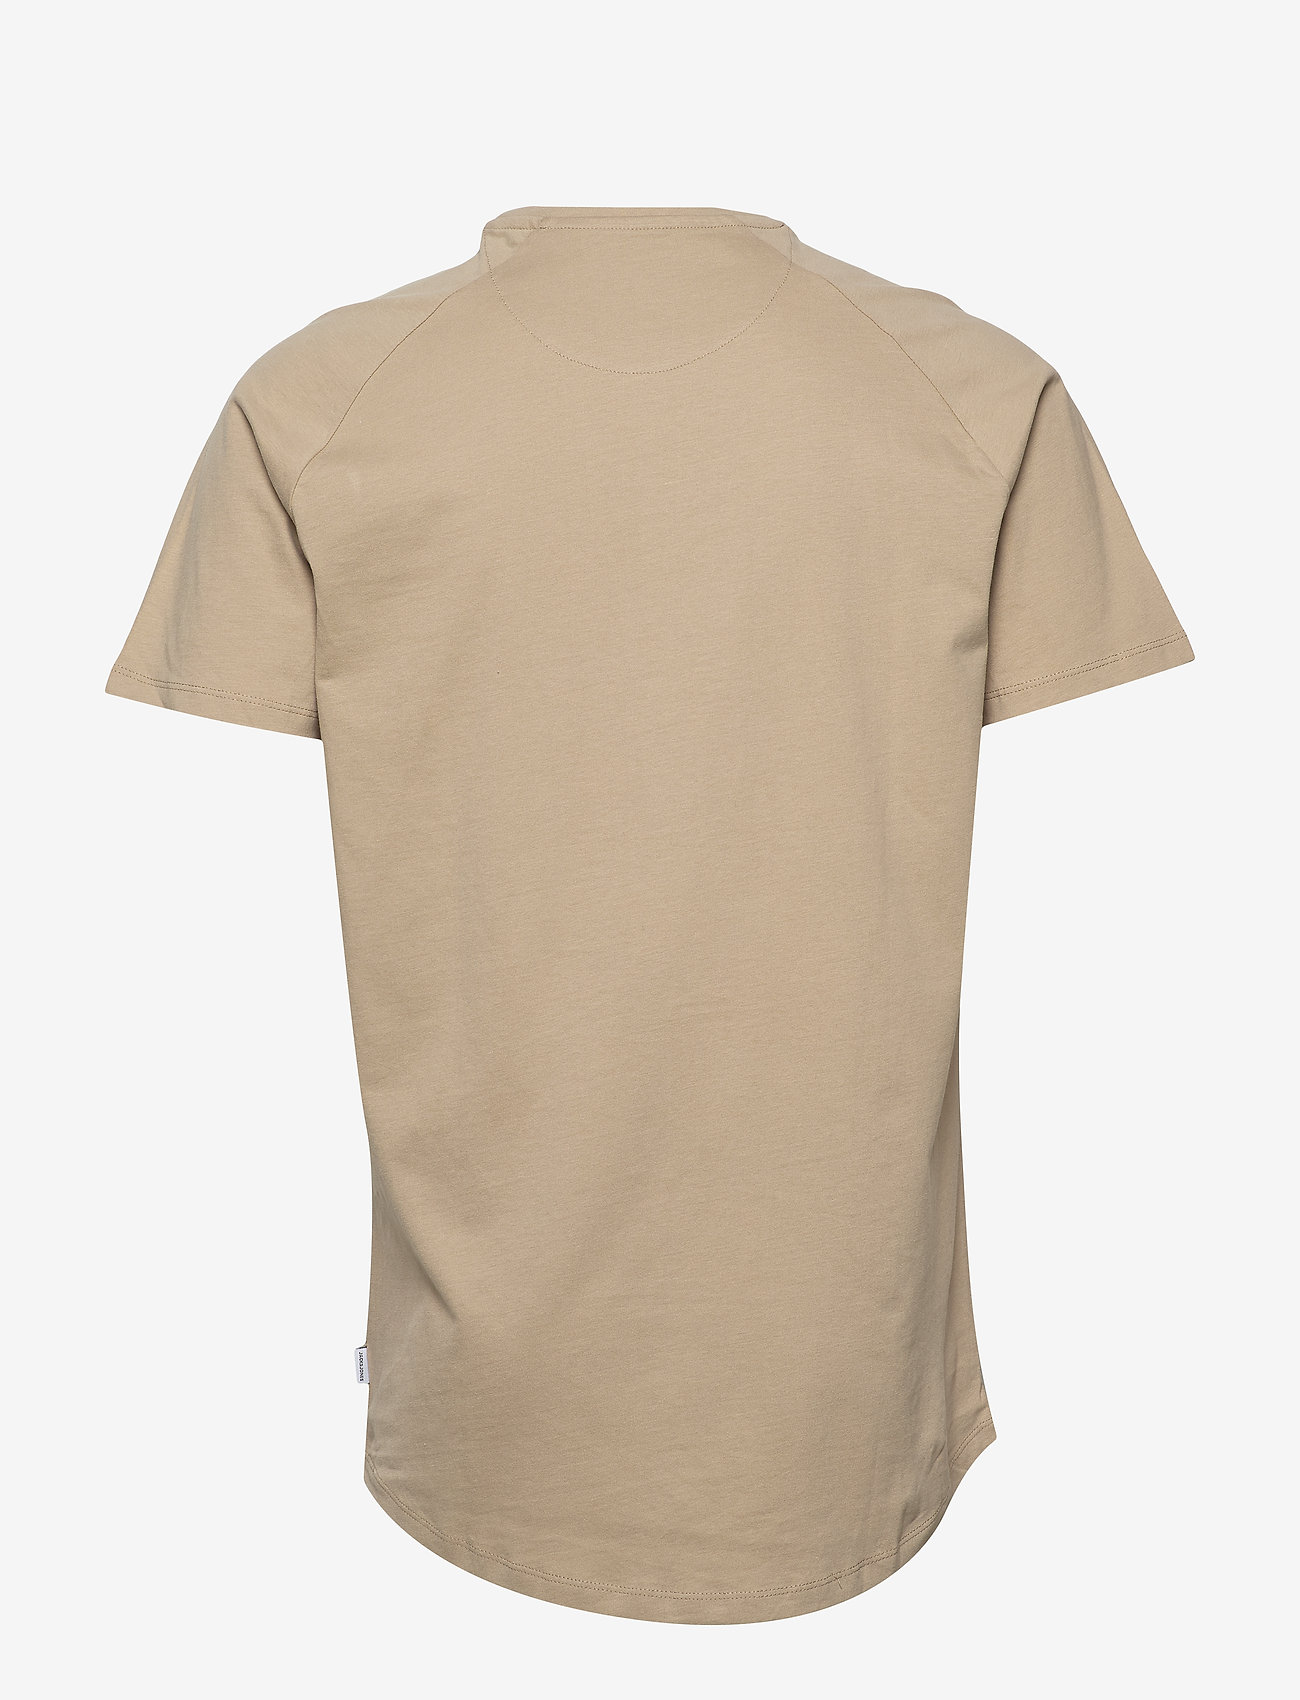 Jack & Jones - JJECURVED TEE SS O-NECK NOOS - basic t-shirts - crockery - 1